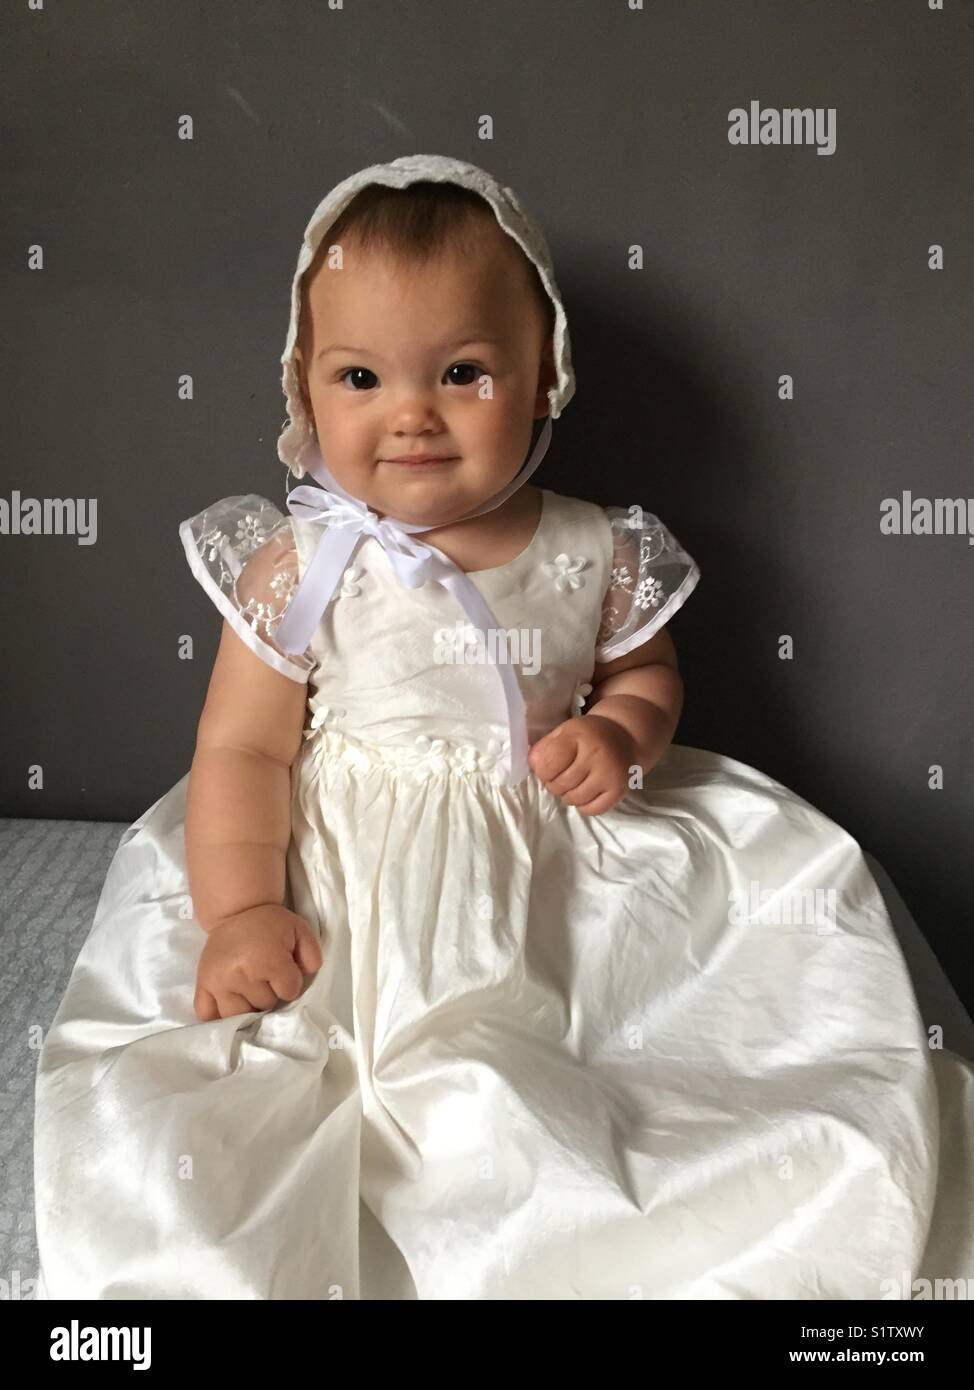 Christening gown - Stock Image